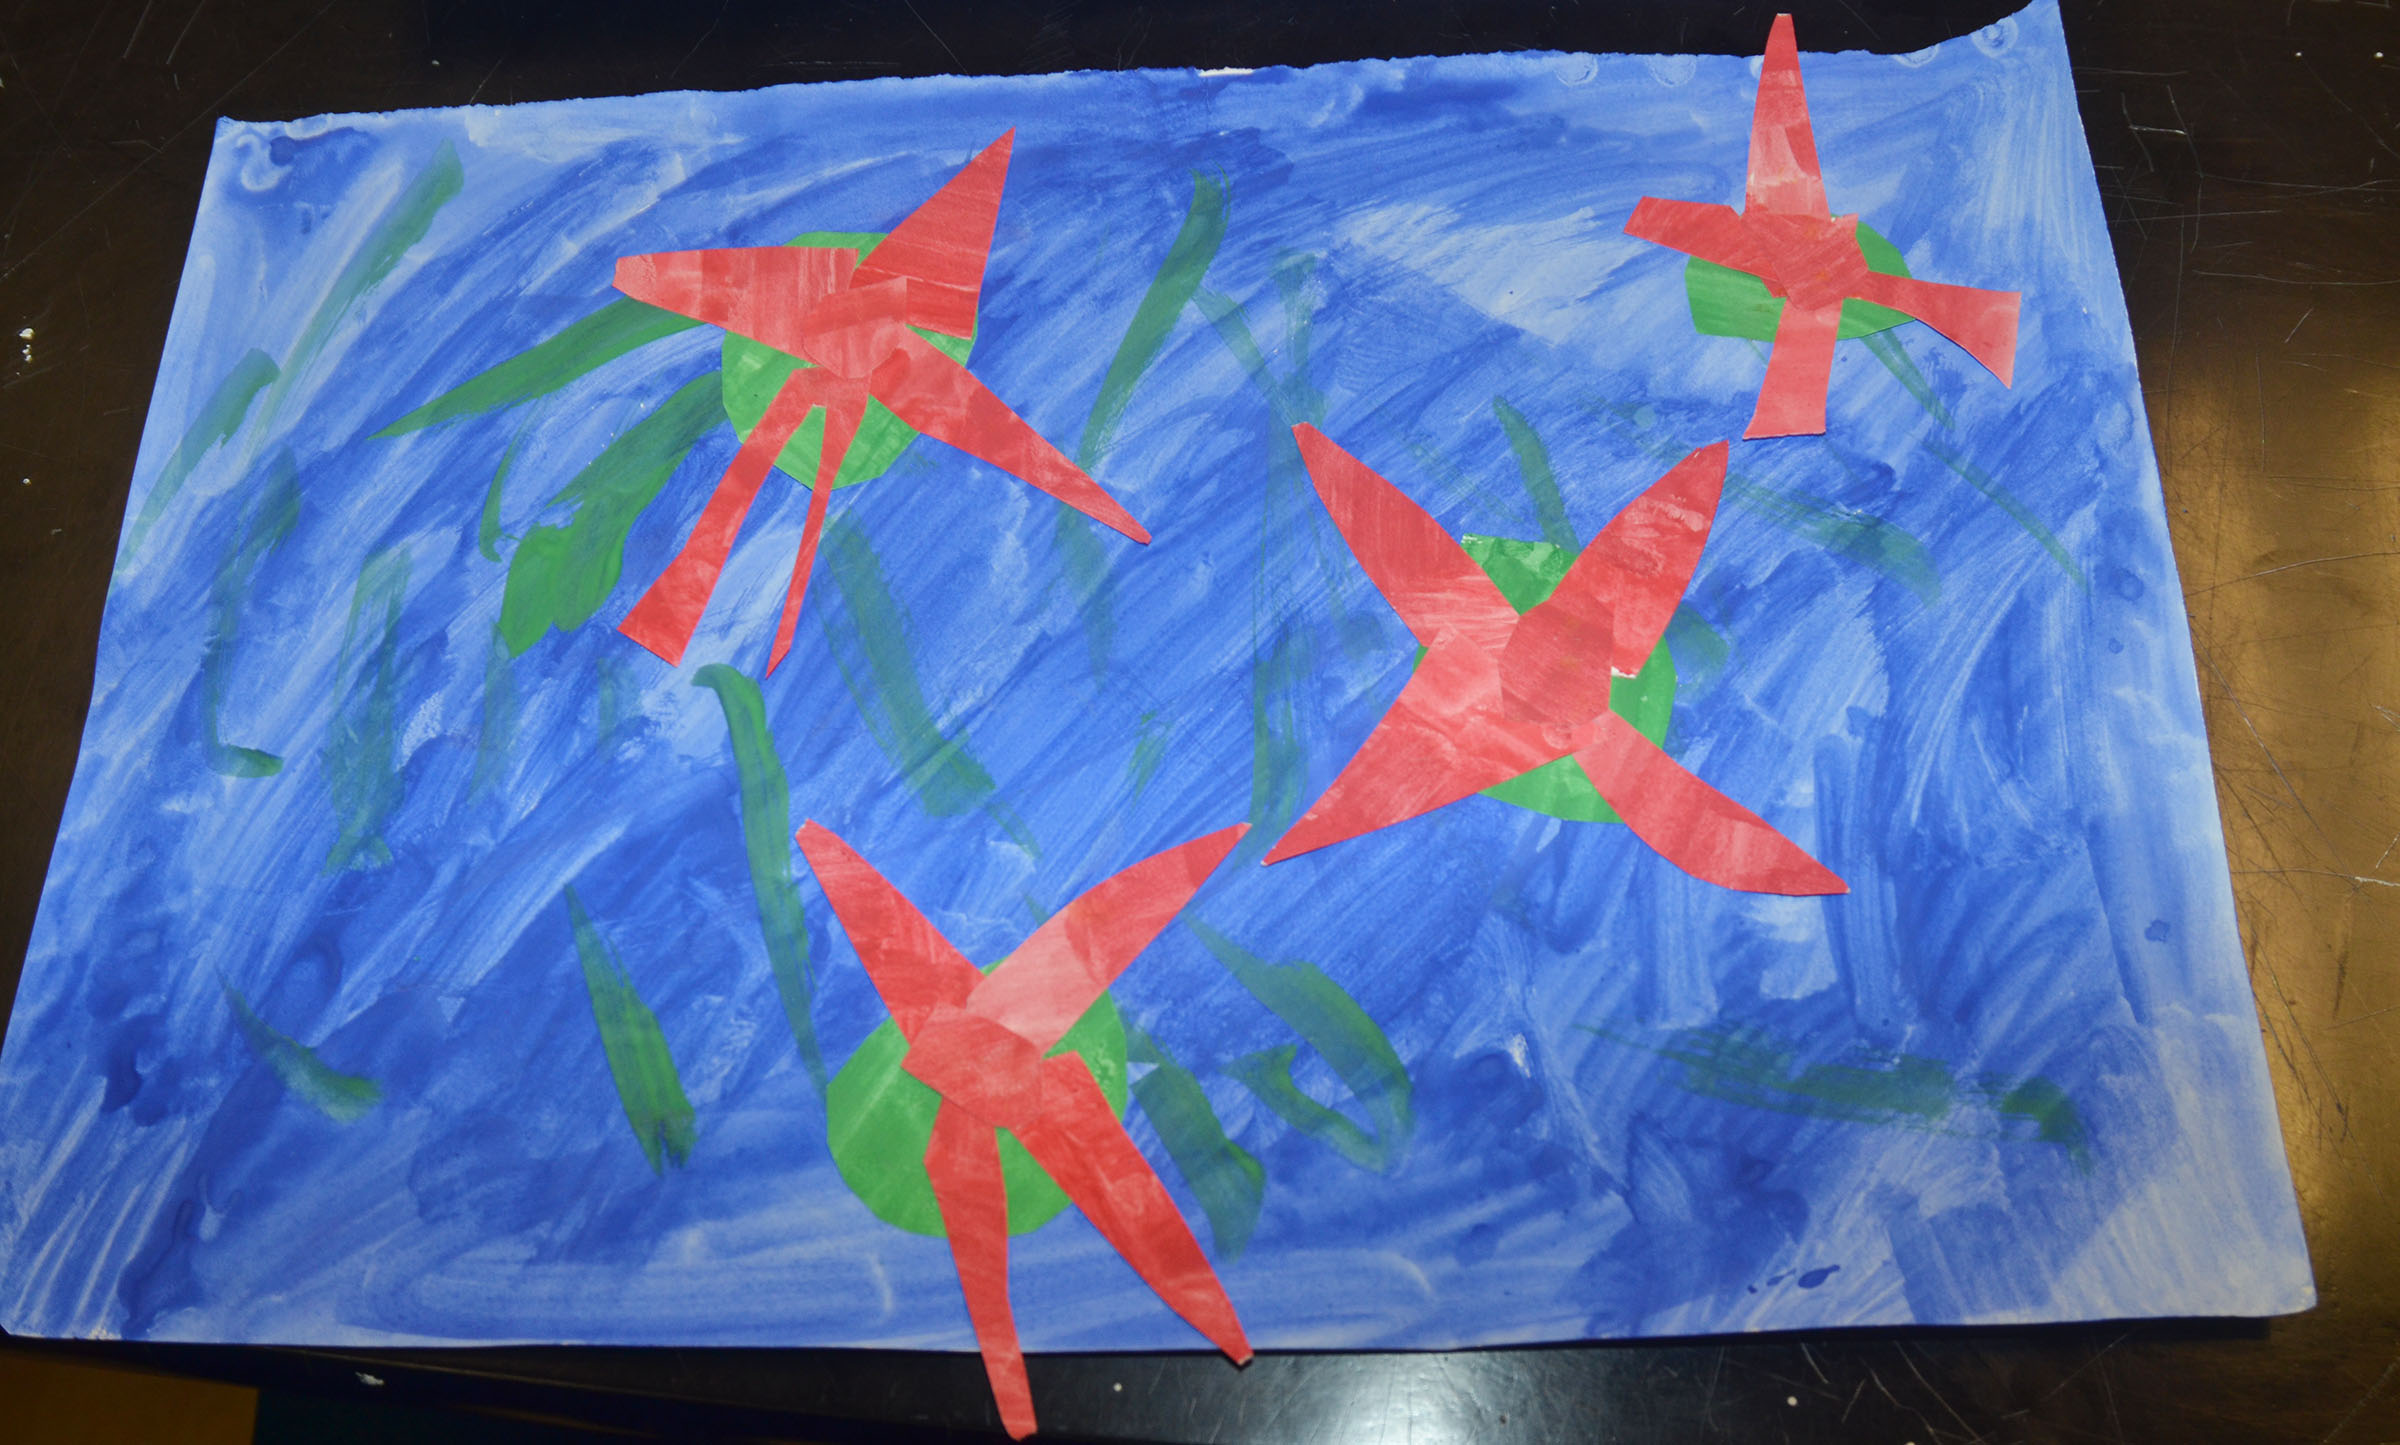 CMS students recently studied Monet and then made their own artwork inspired by his style.